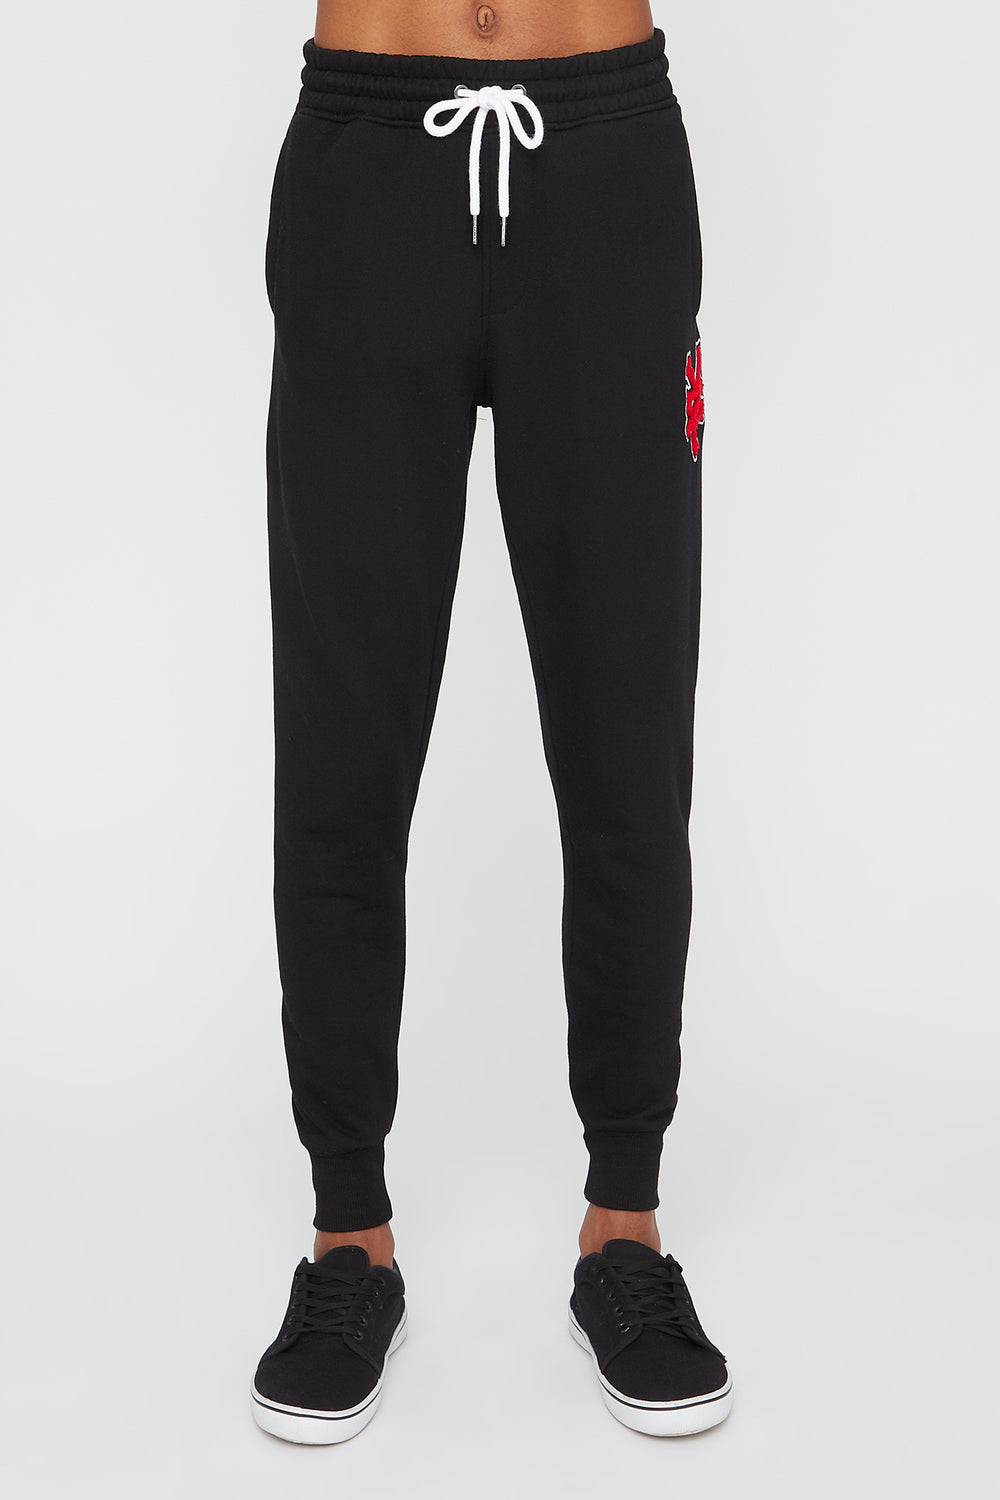 Zoo York Mens Chenille Patch Logo Joggers Black